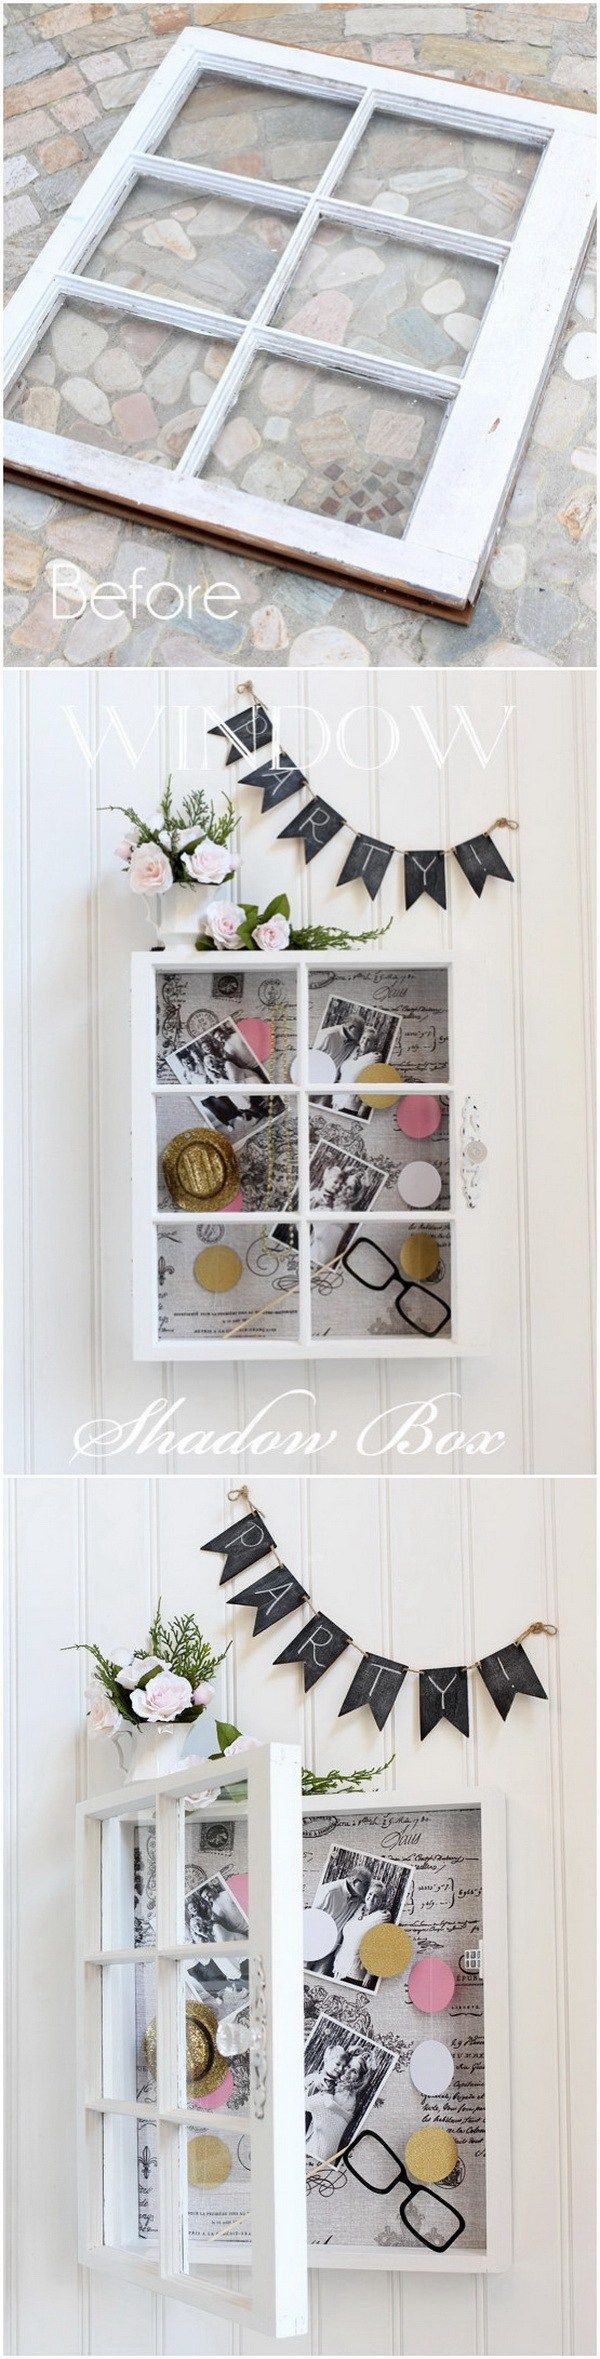 Diy old window decor   creative projects with old windows  storage shelves shadow box